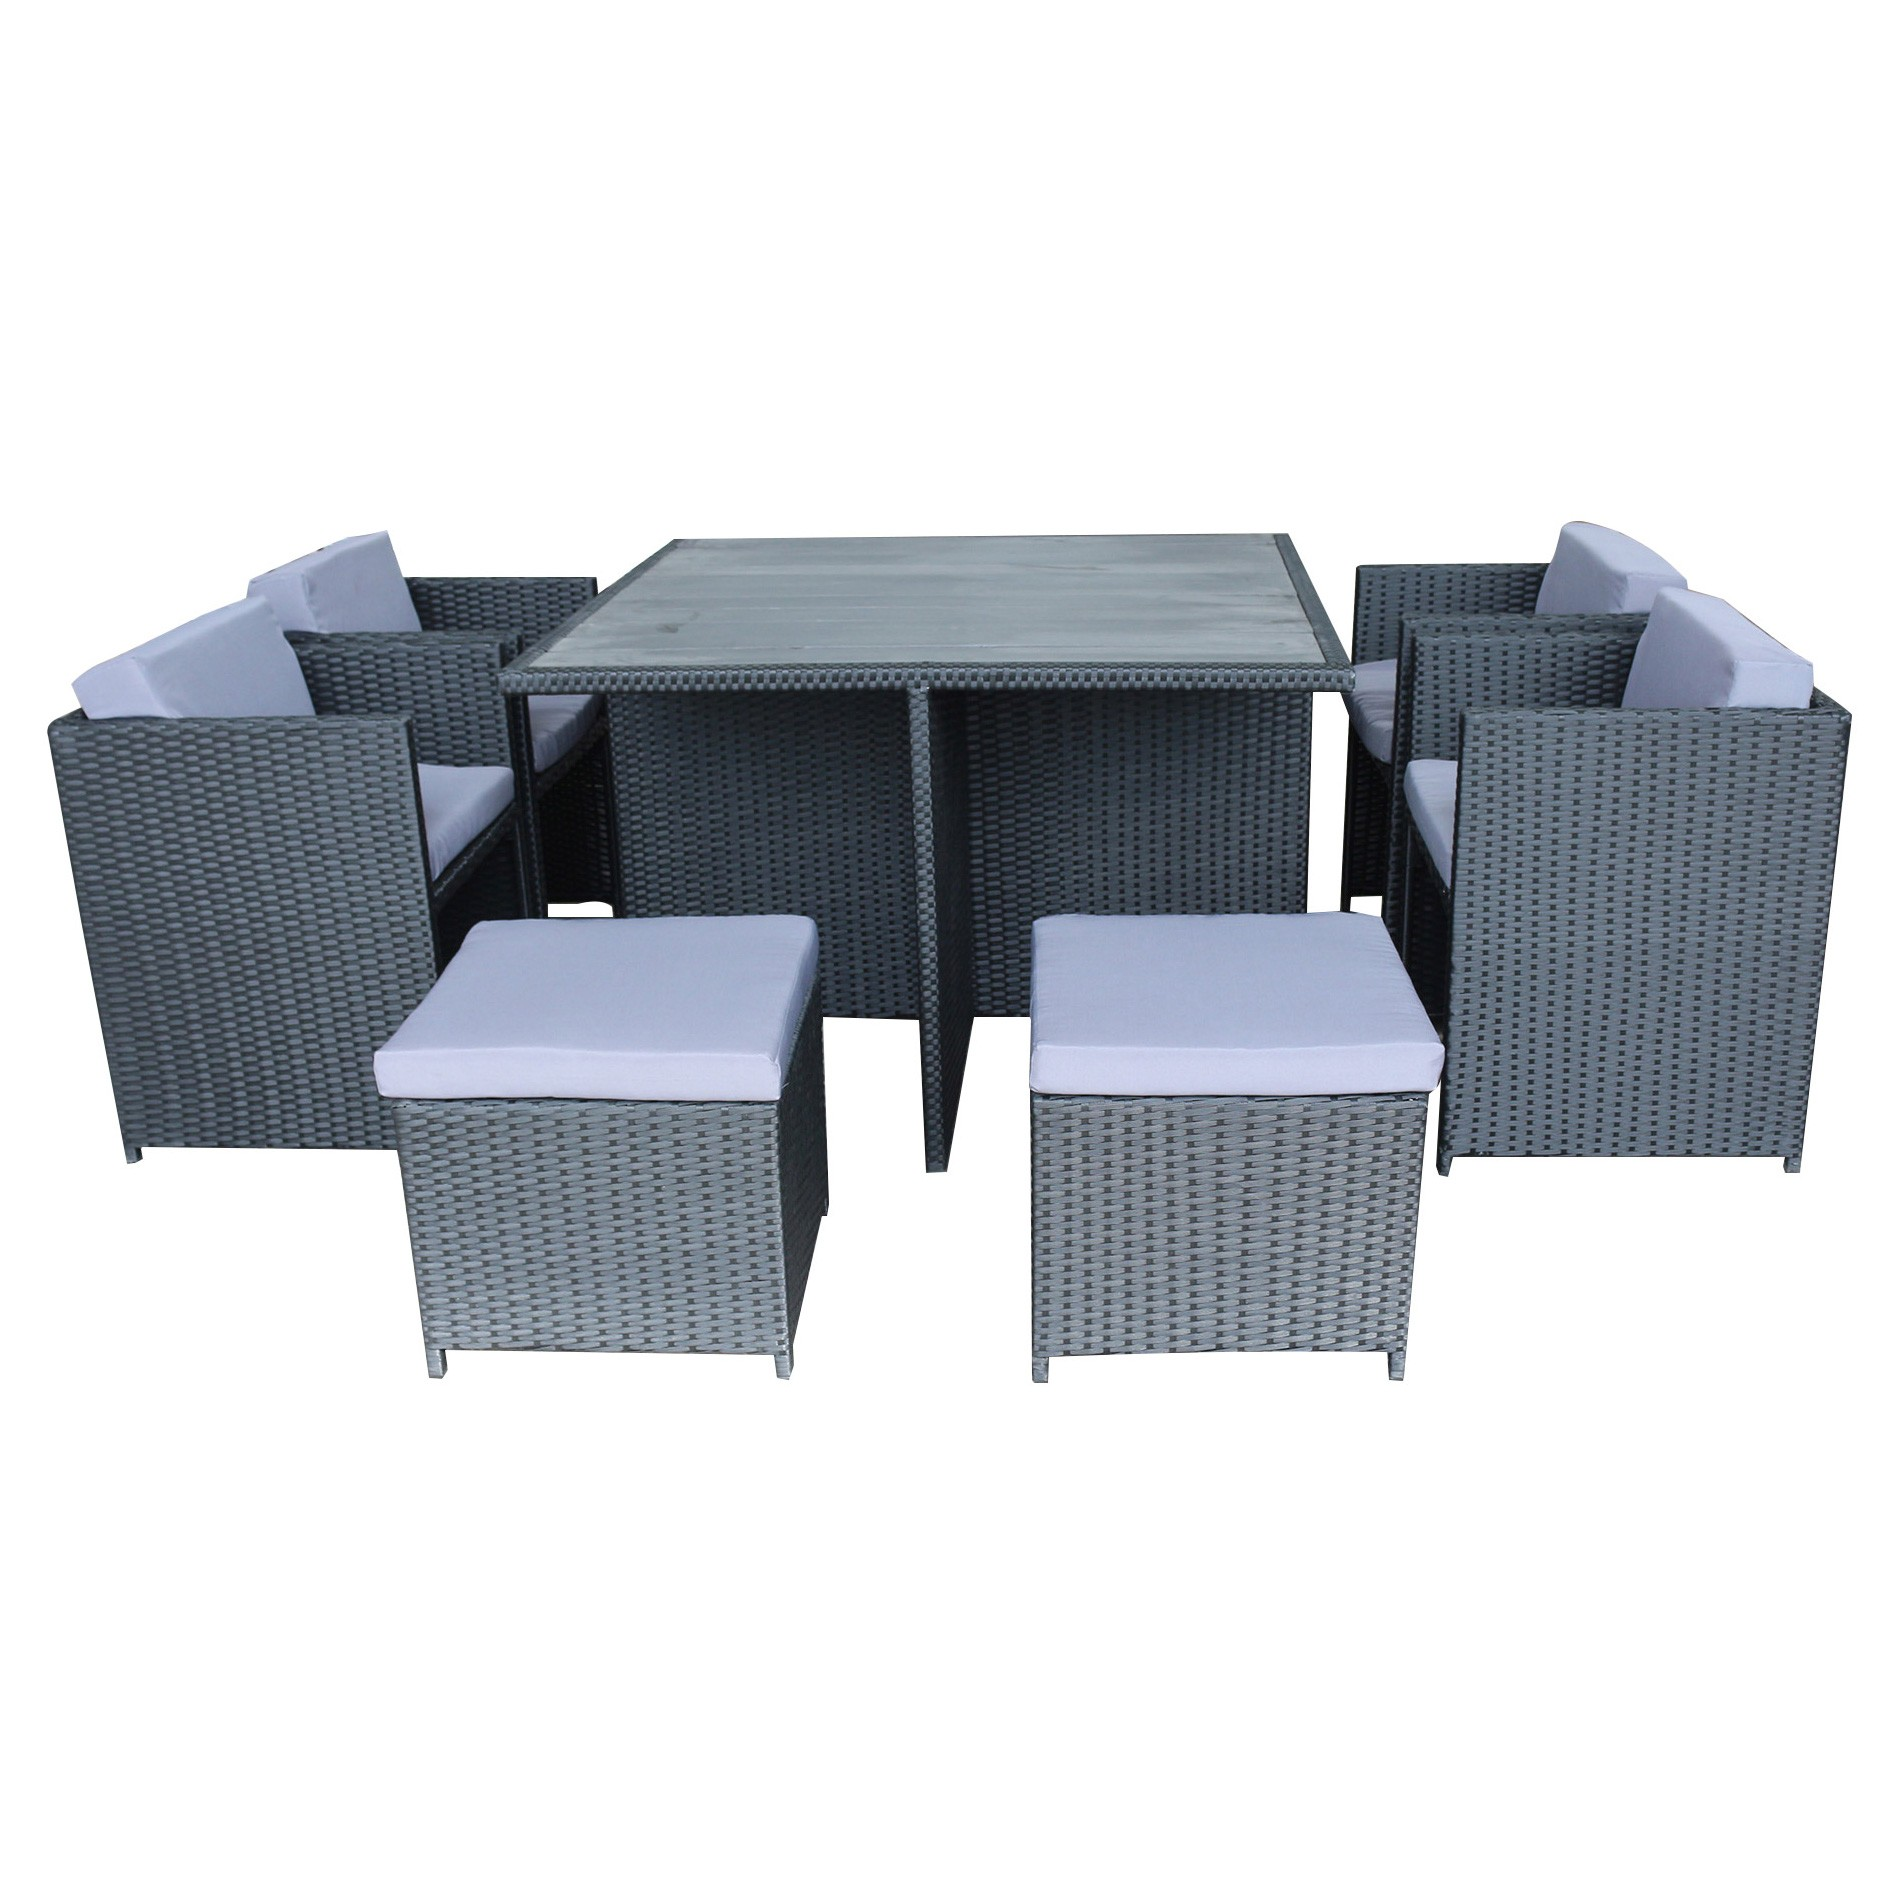 Messina 9 Piece Outdoor Wicker Dining Table Set, Black